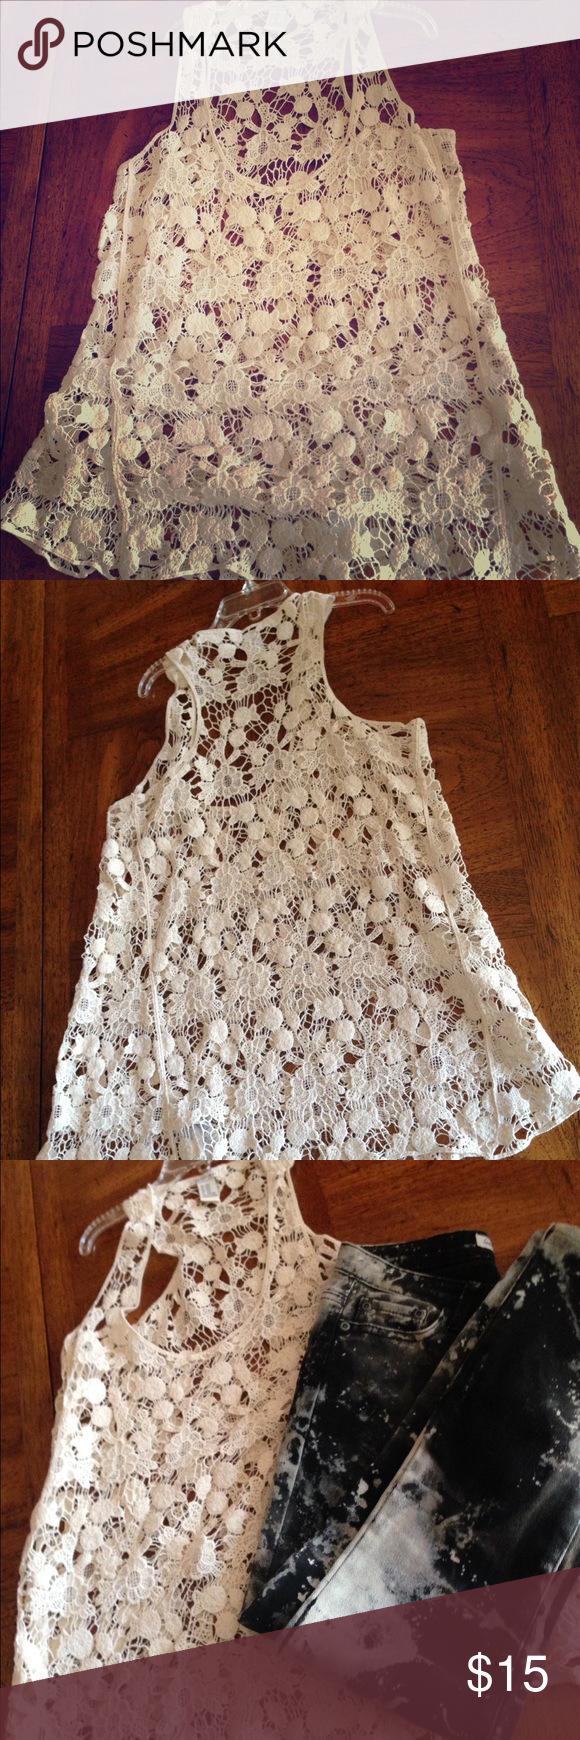 Flash S A L E !!!   Forever 21  lace  top Gently used racerback lace ivory top. Great spring and summer essential. Size S/M Forever 21 Tops Tank Tops